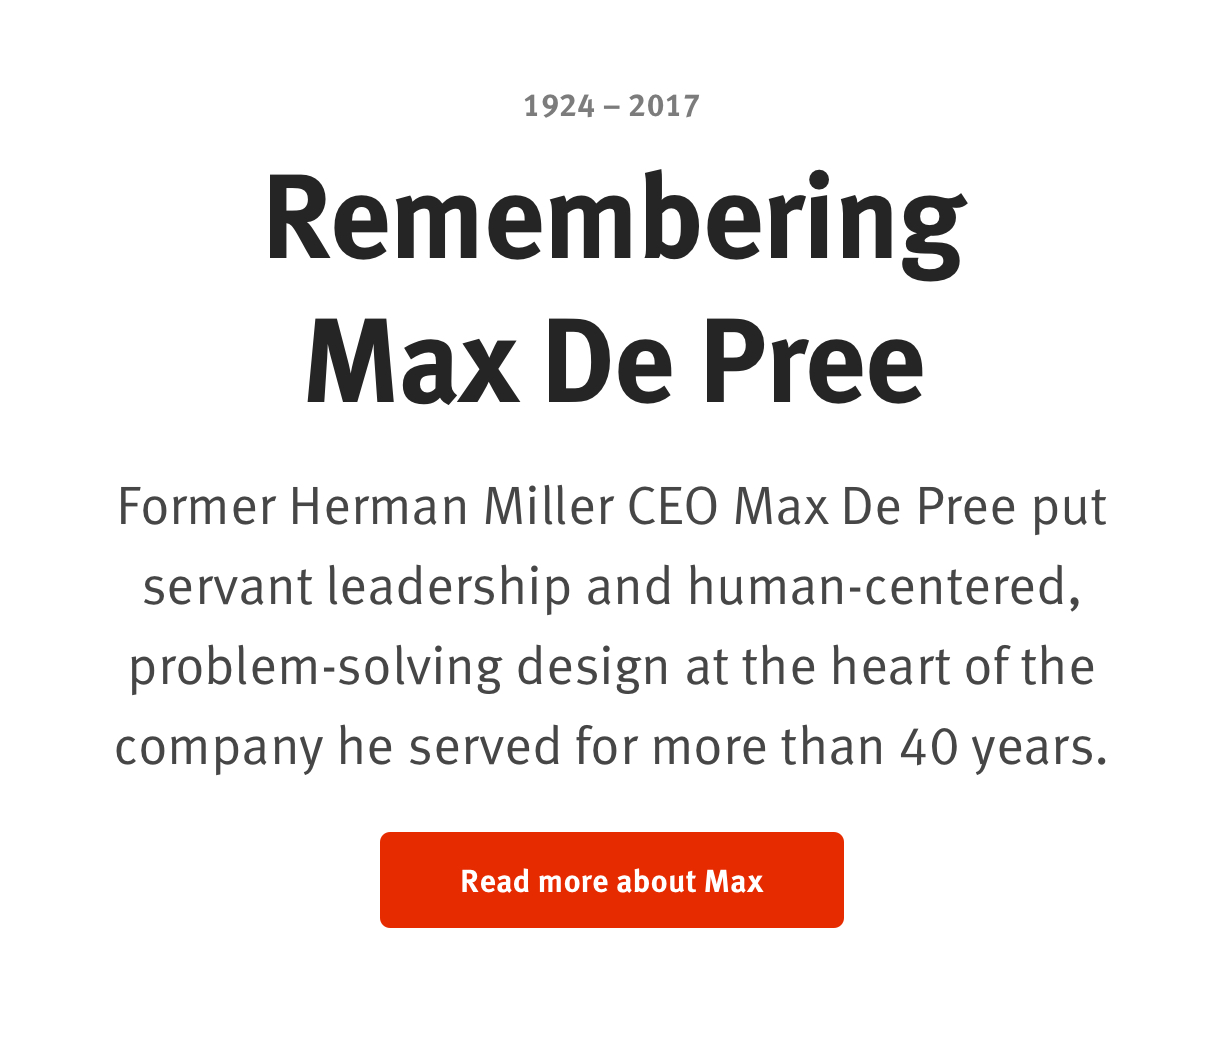 Remembering Max De Pree 1924 – 2017  Former Herman Miller CEO Max De Pree put servant leadership and human-centered, problem-solving design at the heart of the company he served for more than 40 years.   Read more about Max